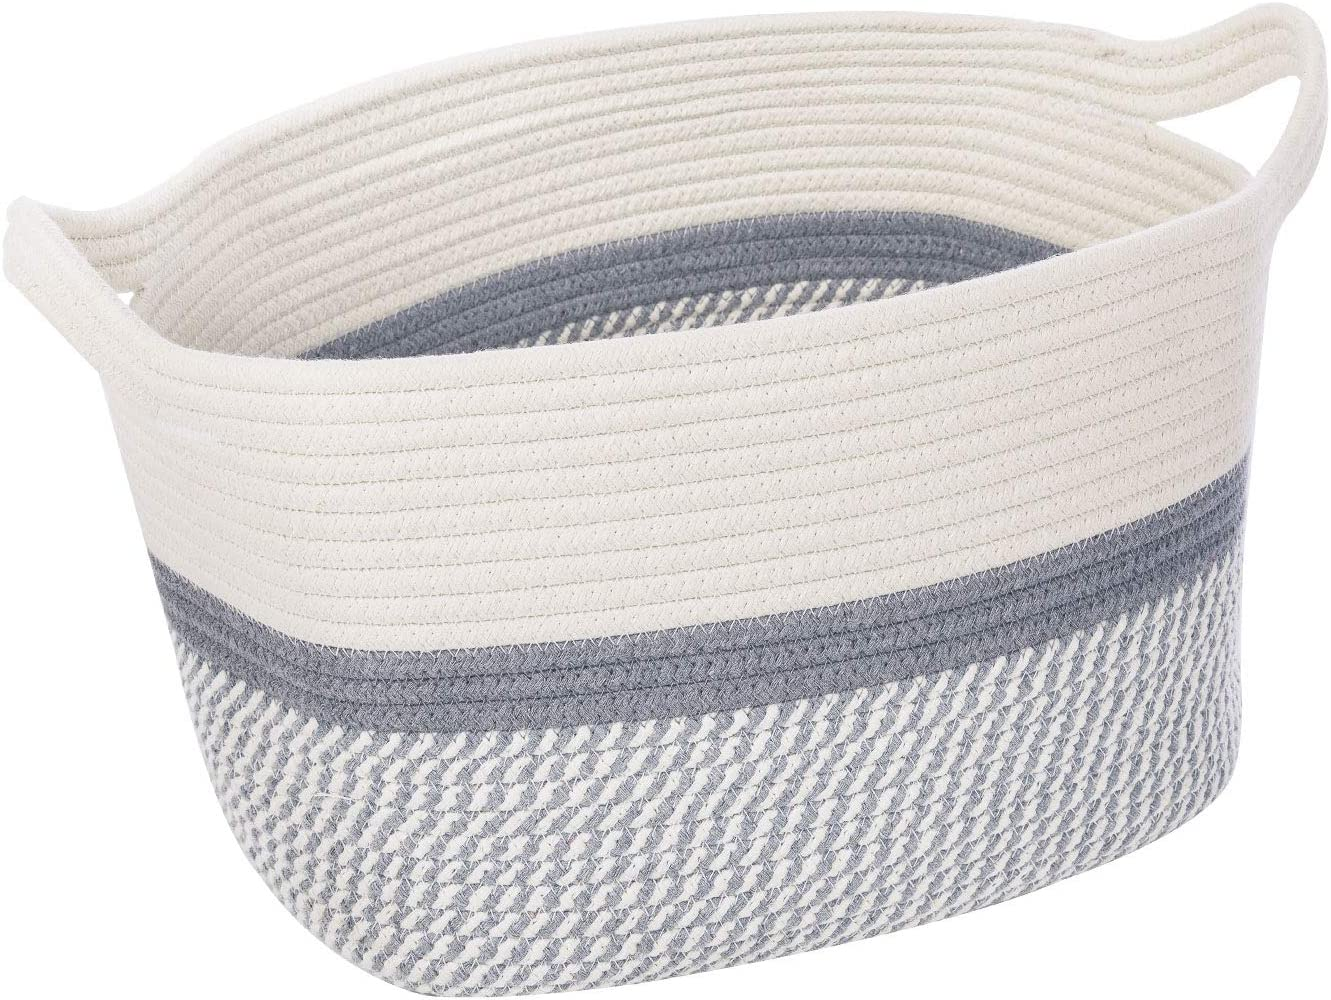 """CHICVITA Square Cotton Rope Woven Basket with Handles for Books, Magazines, Toys - Decorative Rectangle Basket for Baby Nursery, Living Room, Bathroom 13.5"""" x 11"""" x 9.5"""""""